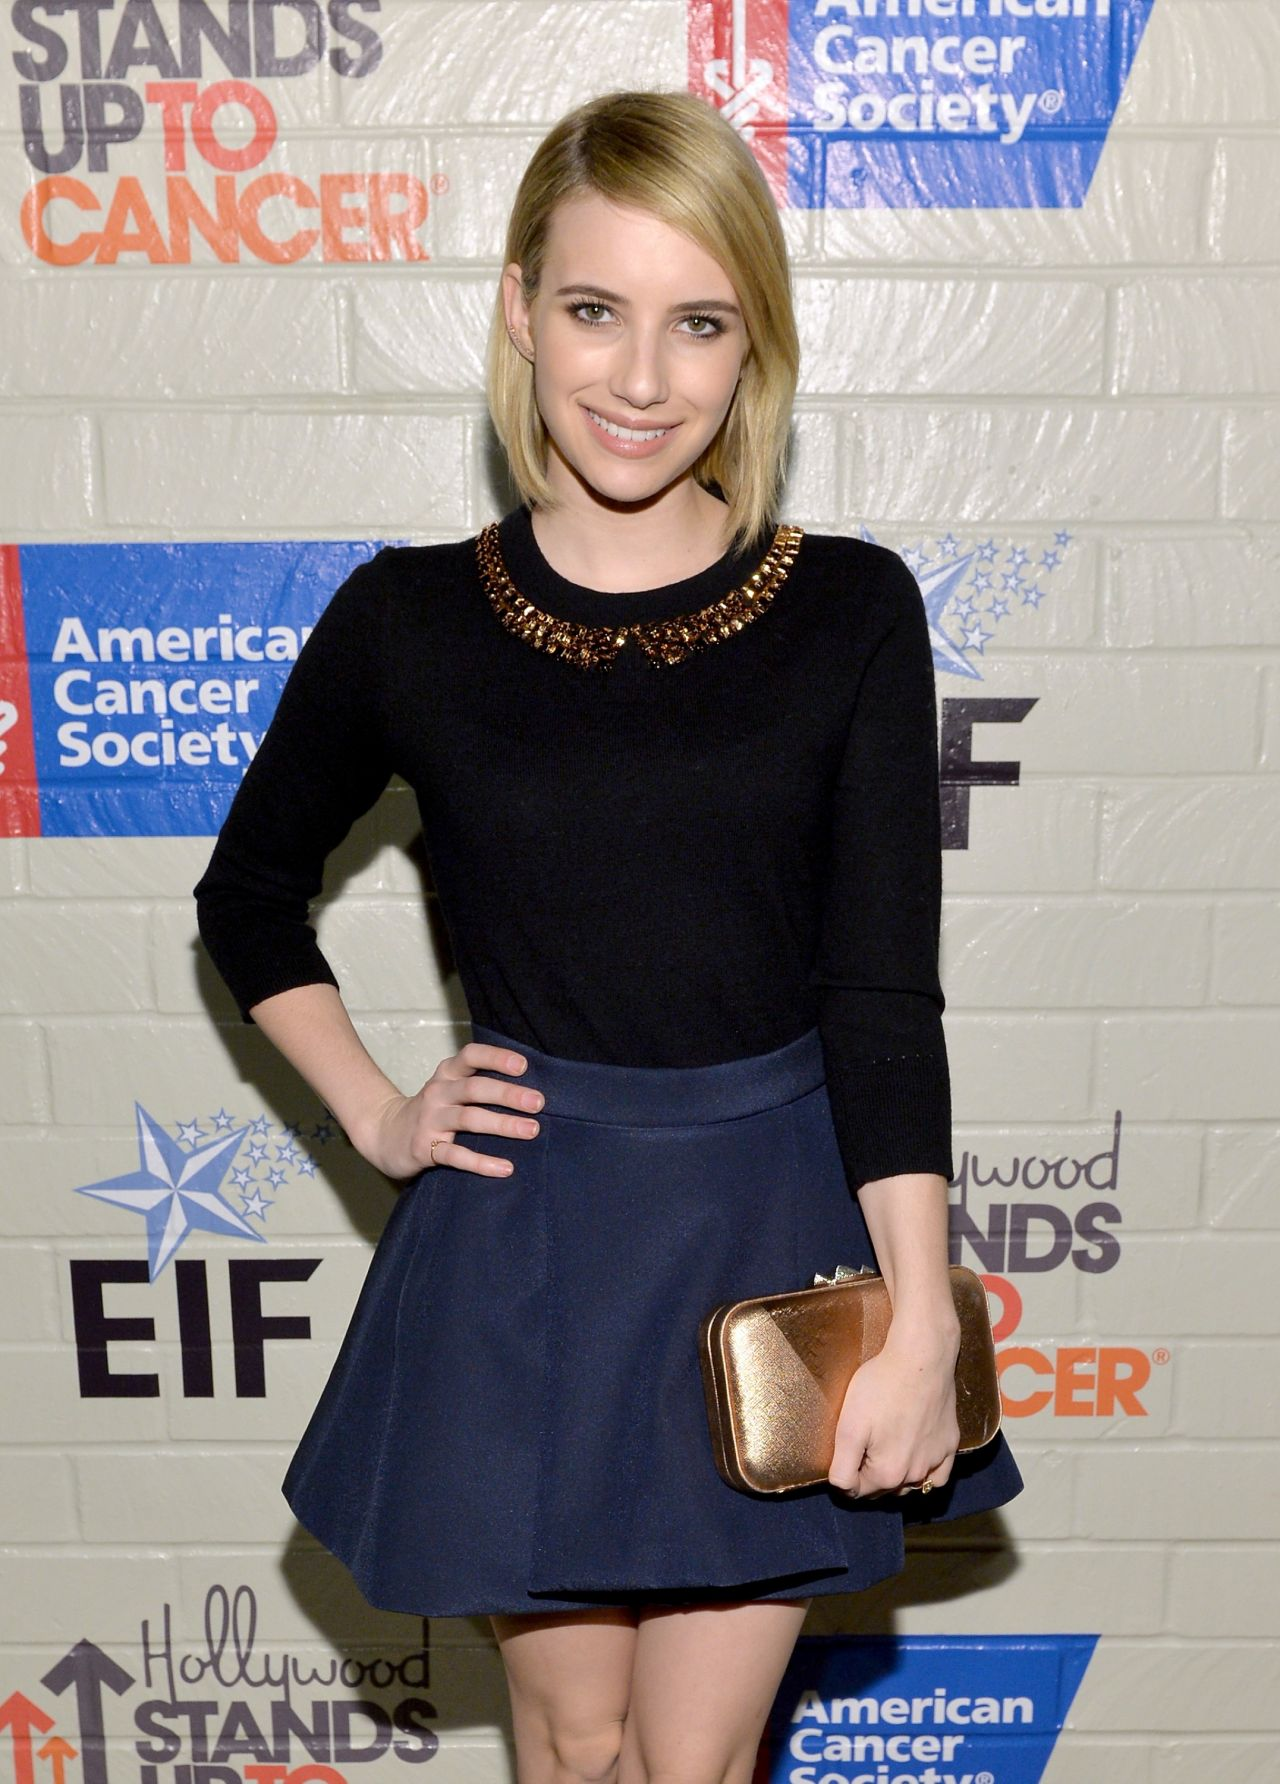 Emma Roberts - Hollywood Stands Up To Cancer Event in Culver City, January 2014